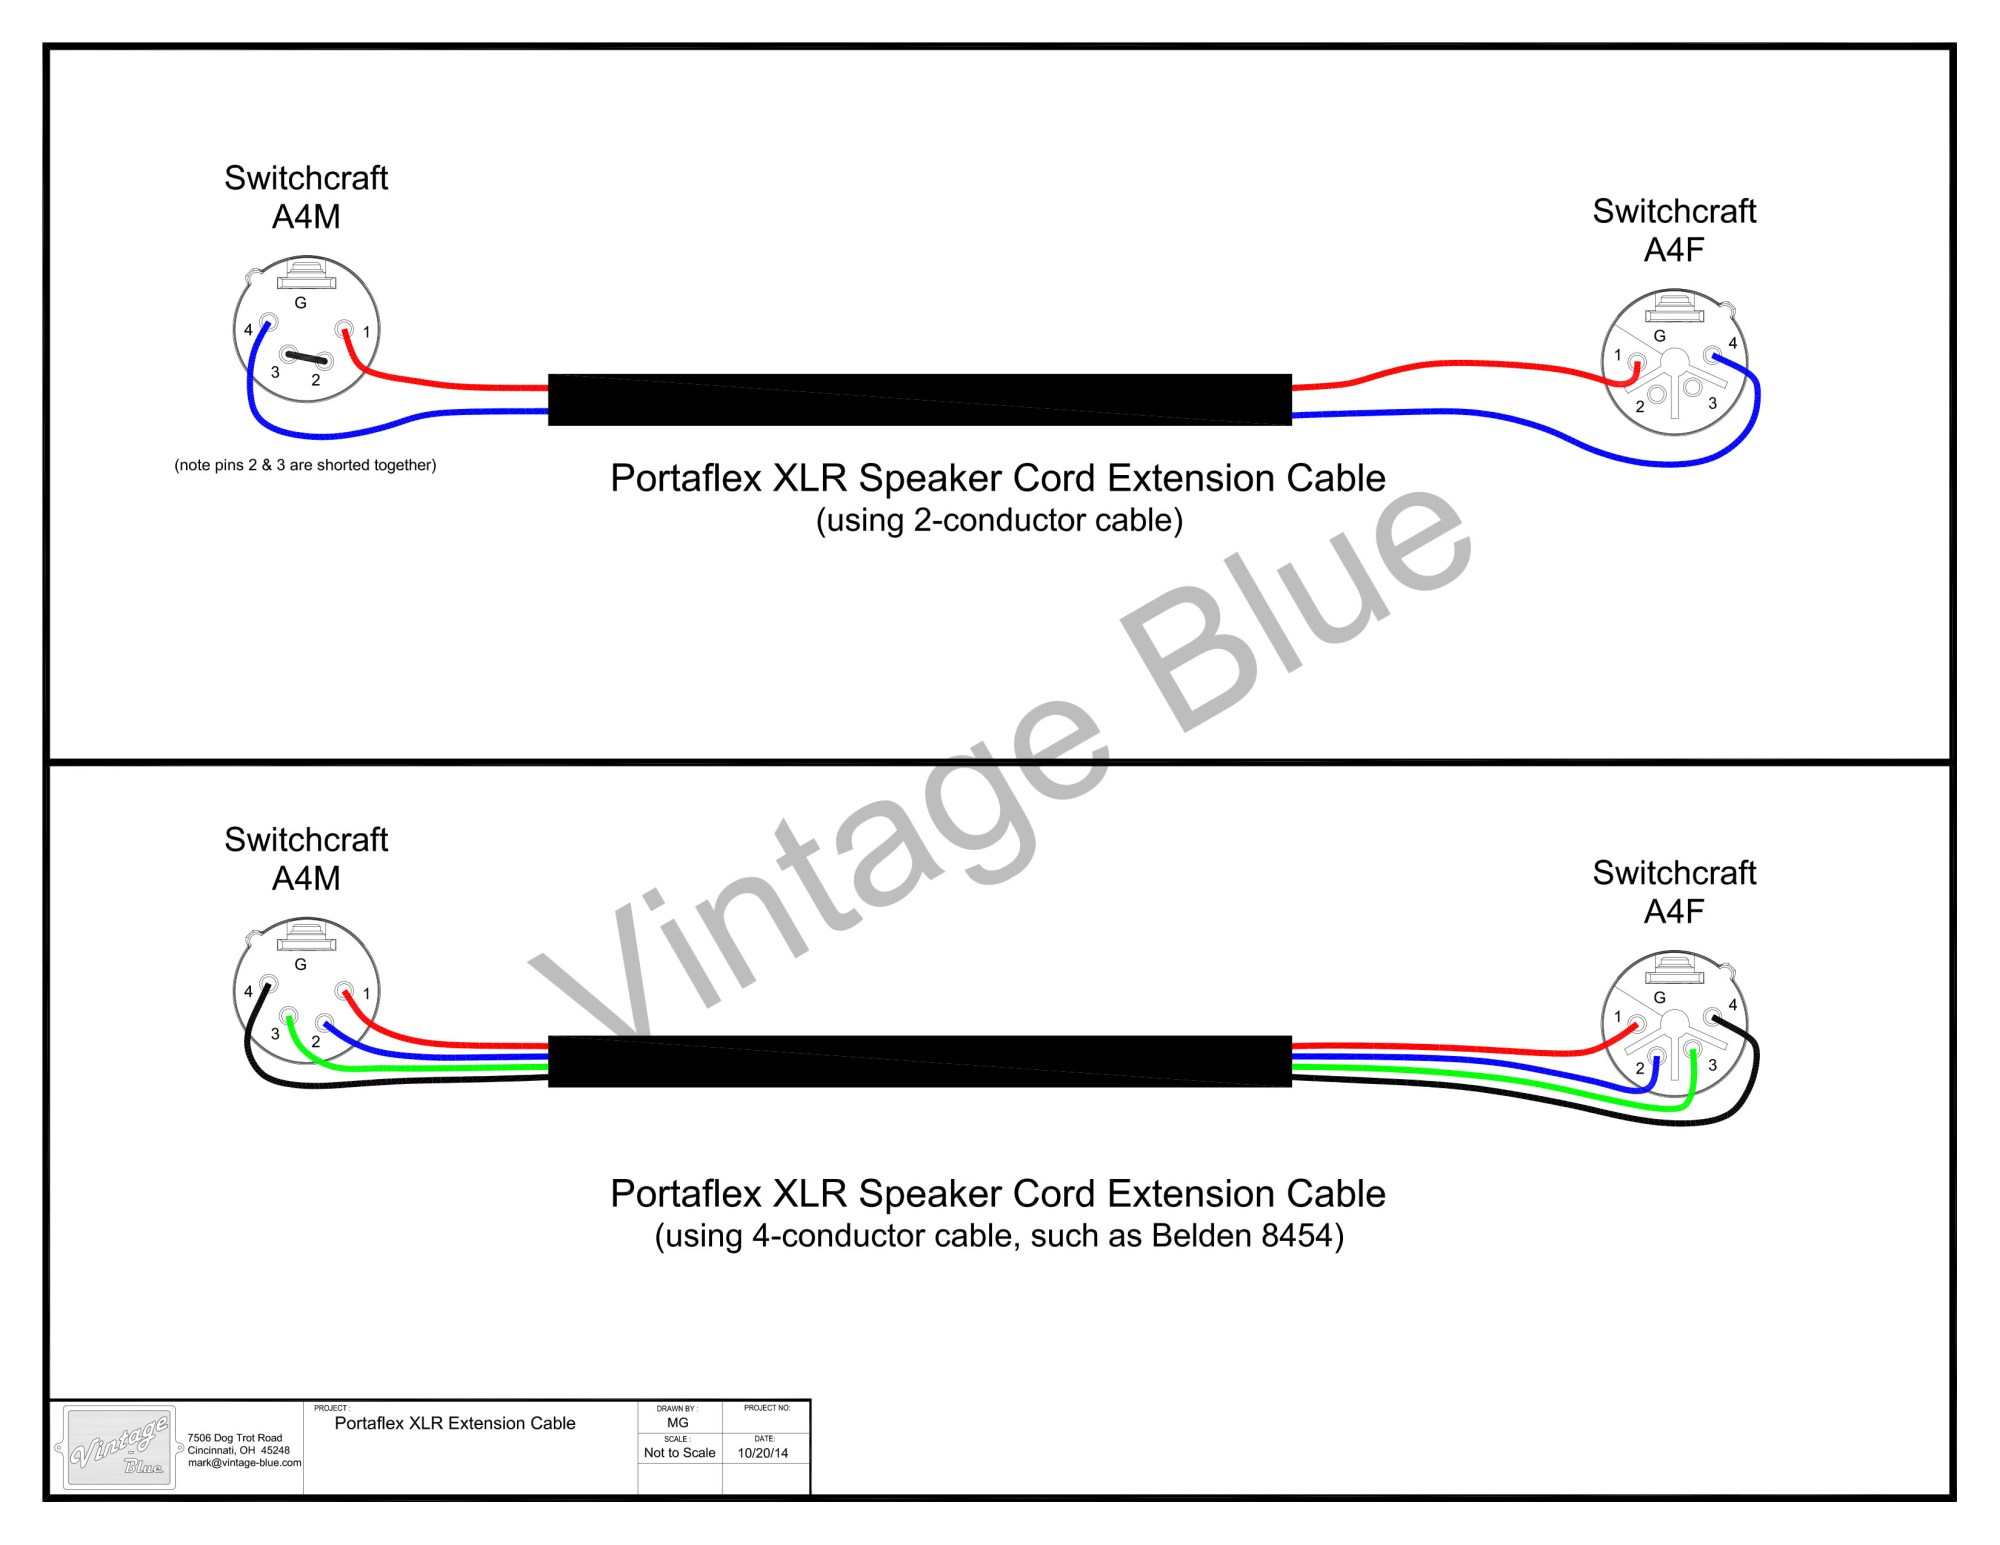 hight resolution of 4 pin xlr wiring diagram wiring diagram portal rh 19 12 4 kaminari music de xlr 5 pin diagram xlr 5 pin diagram